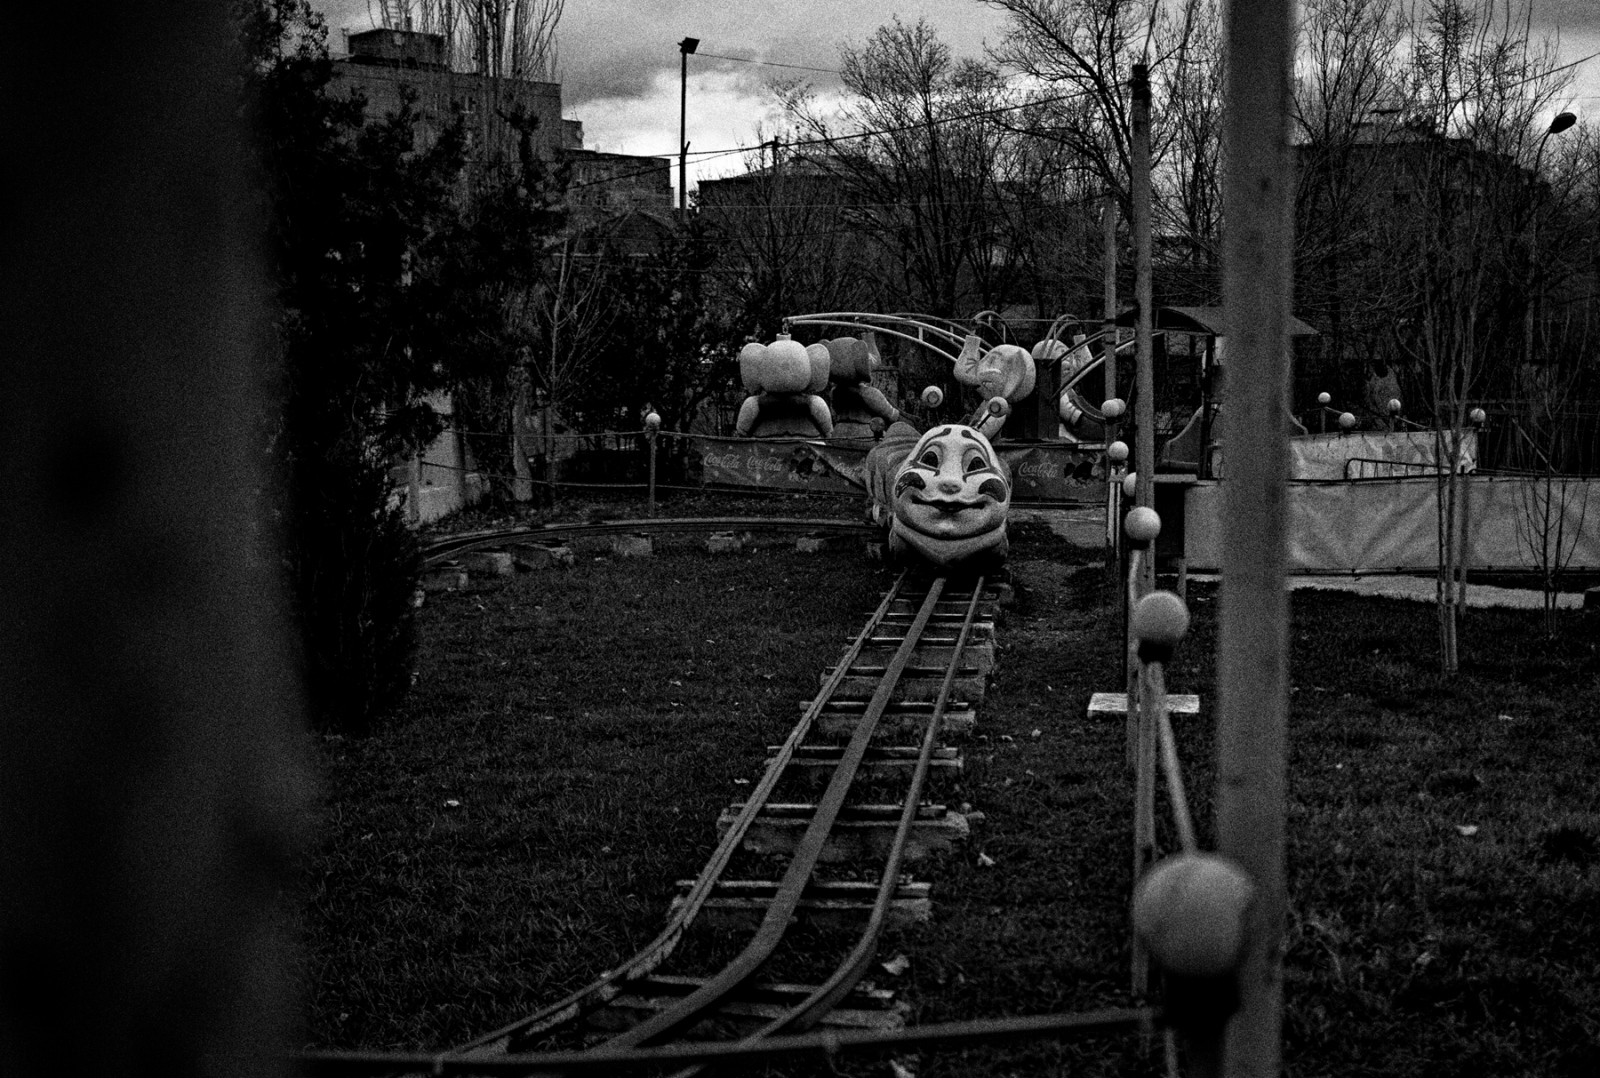 An amusement park closed for the season in the Capital City of Yerevan, Armenia.